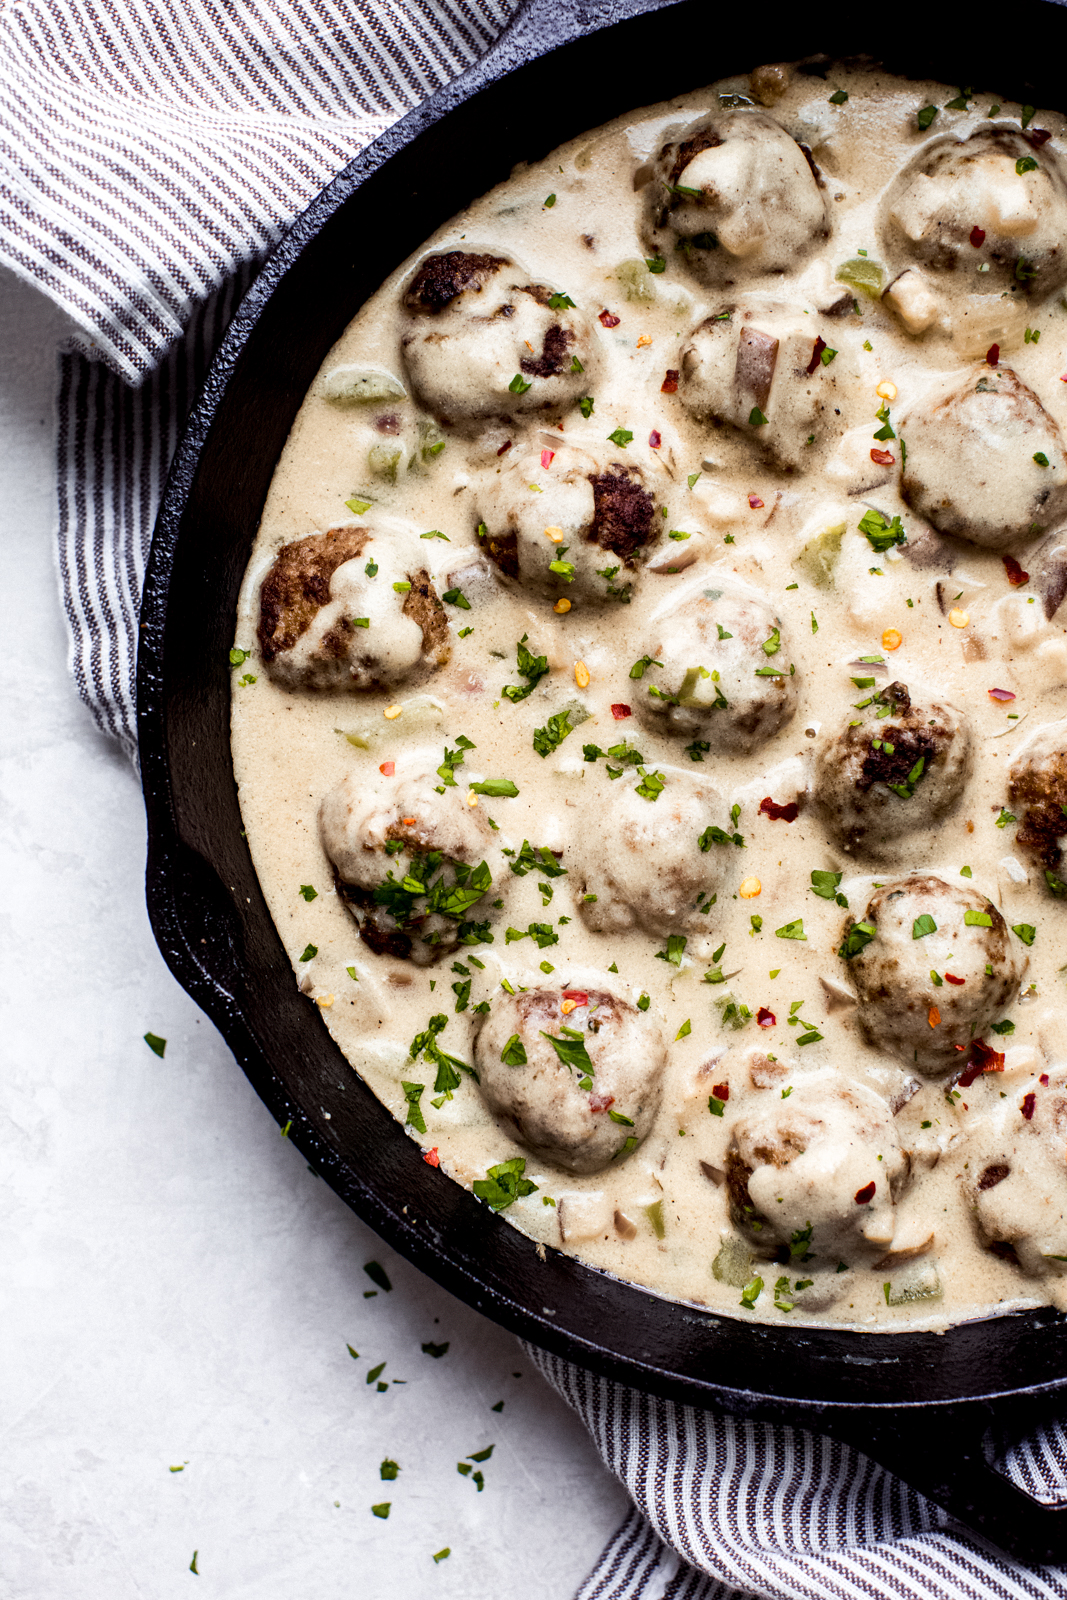 cast iron skillet with meatballs in cheese sauce